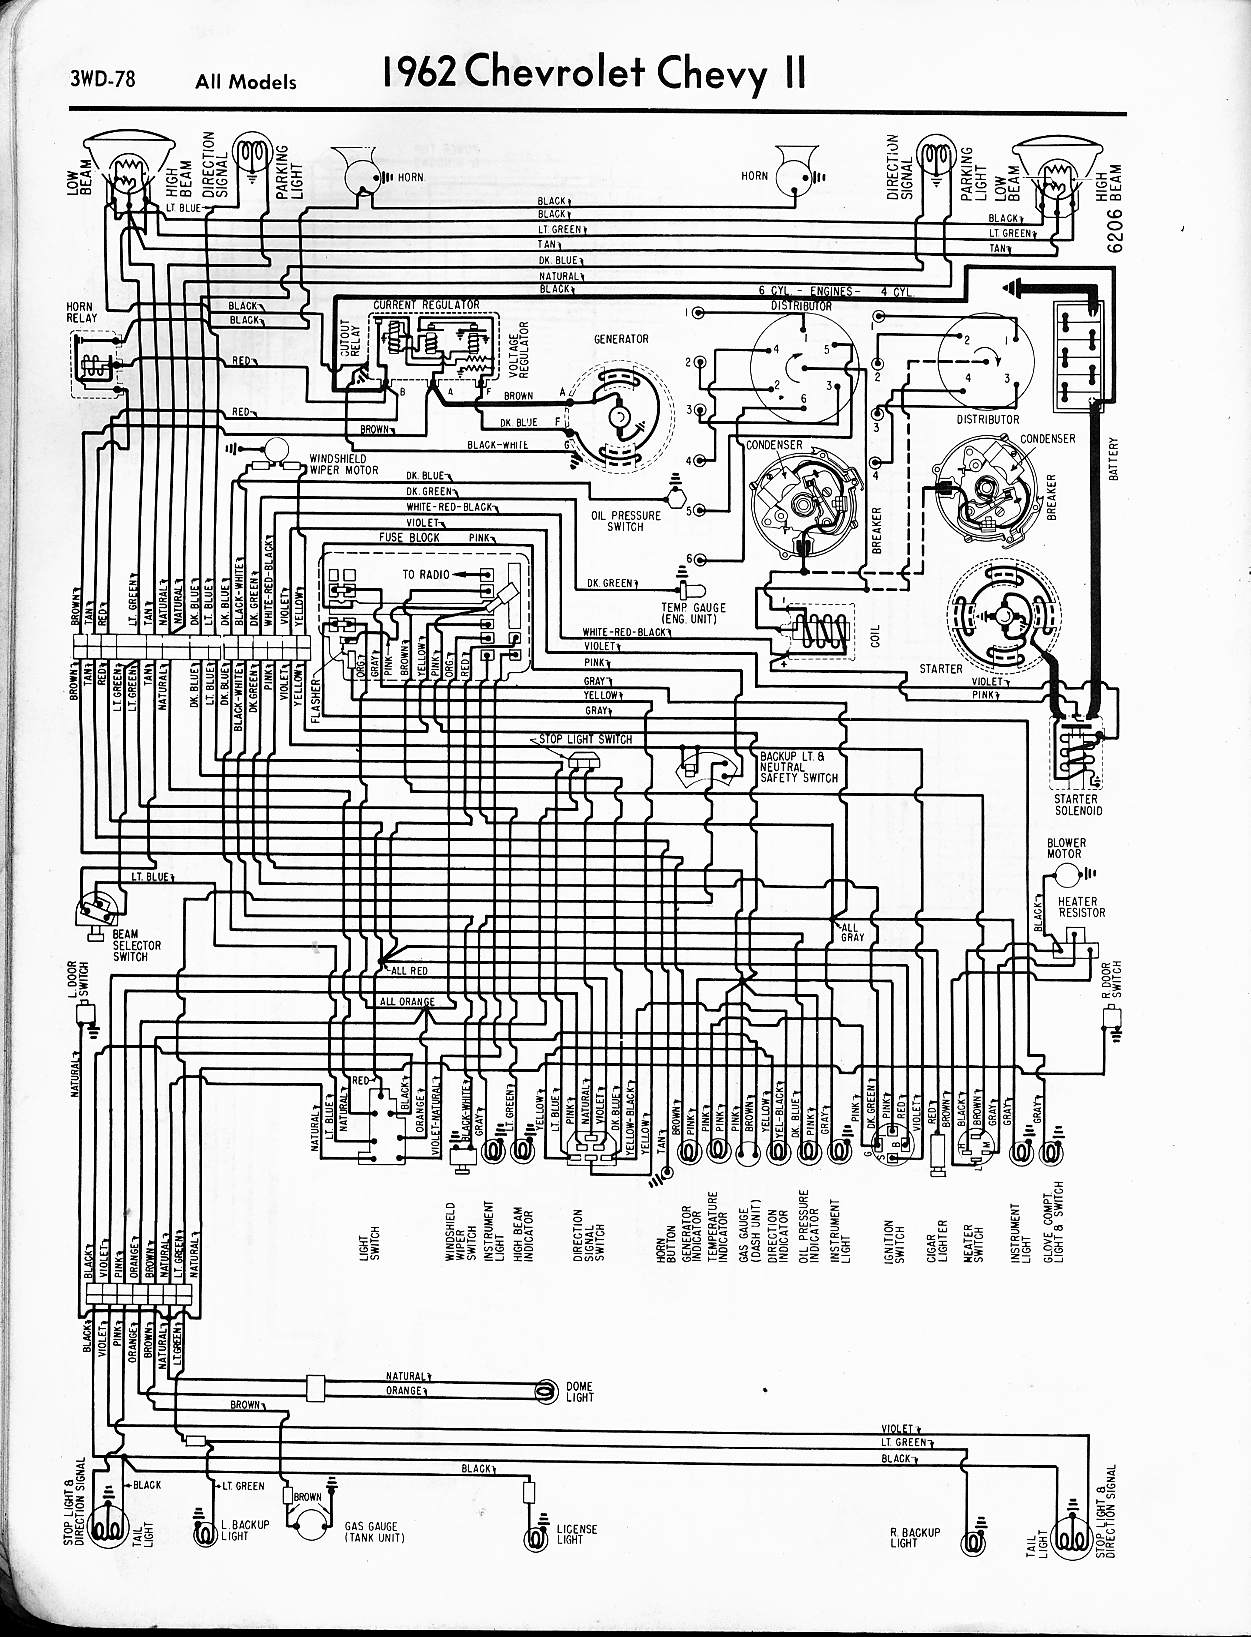 MWireChev62_3WD 078 1962 chevy truck wiring diagram 1960 chevy truck wiring diagram 1962 Chevy Heater Box at bayanpartner.co